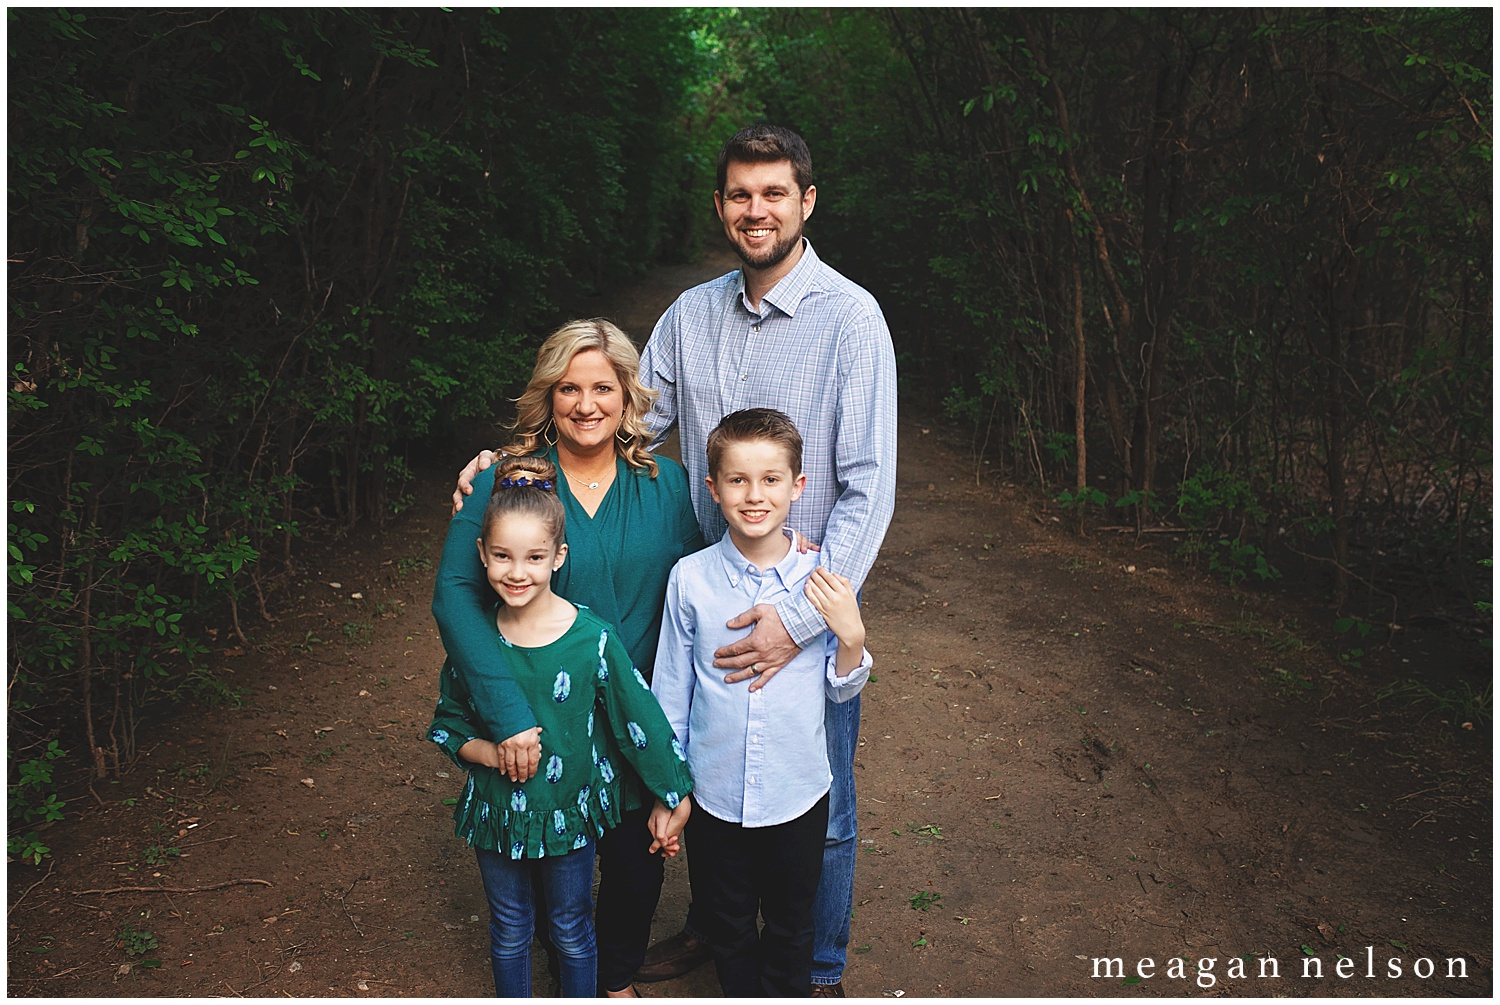 fort_worth_family_photographer_keller_pointe006.jpg